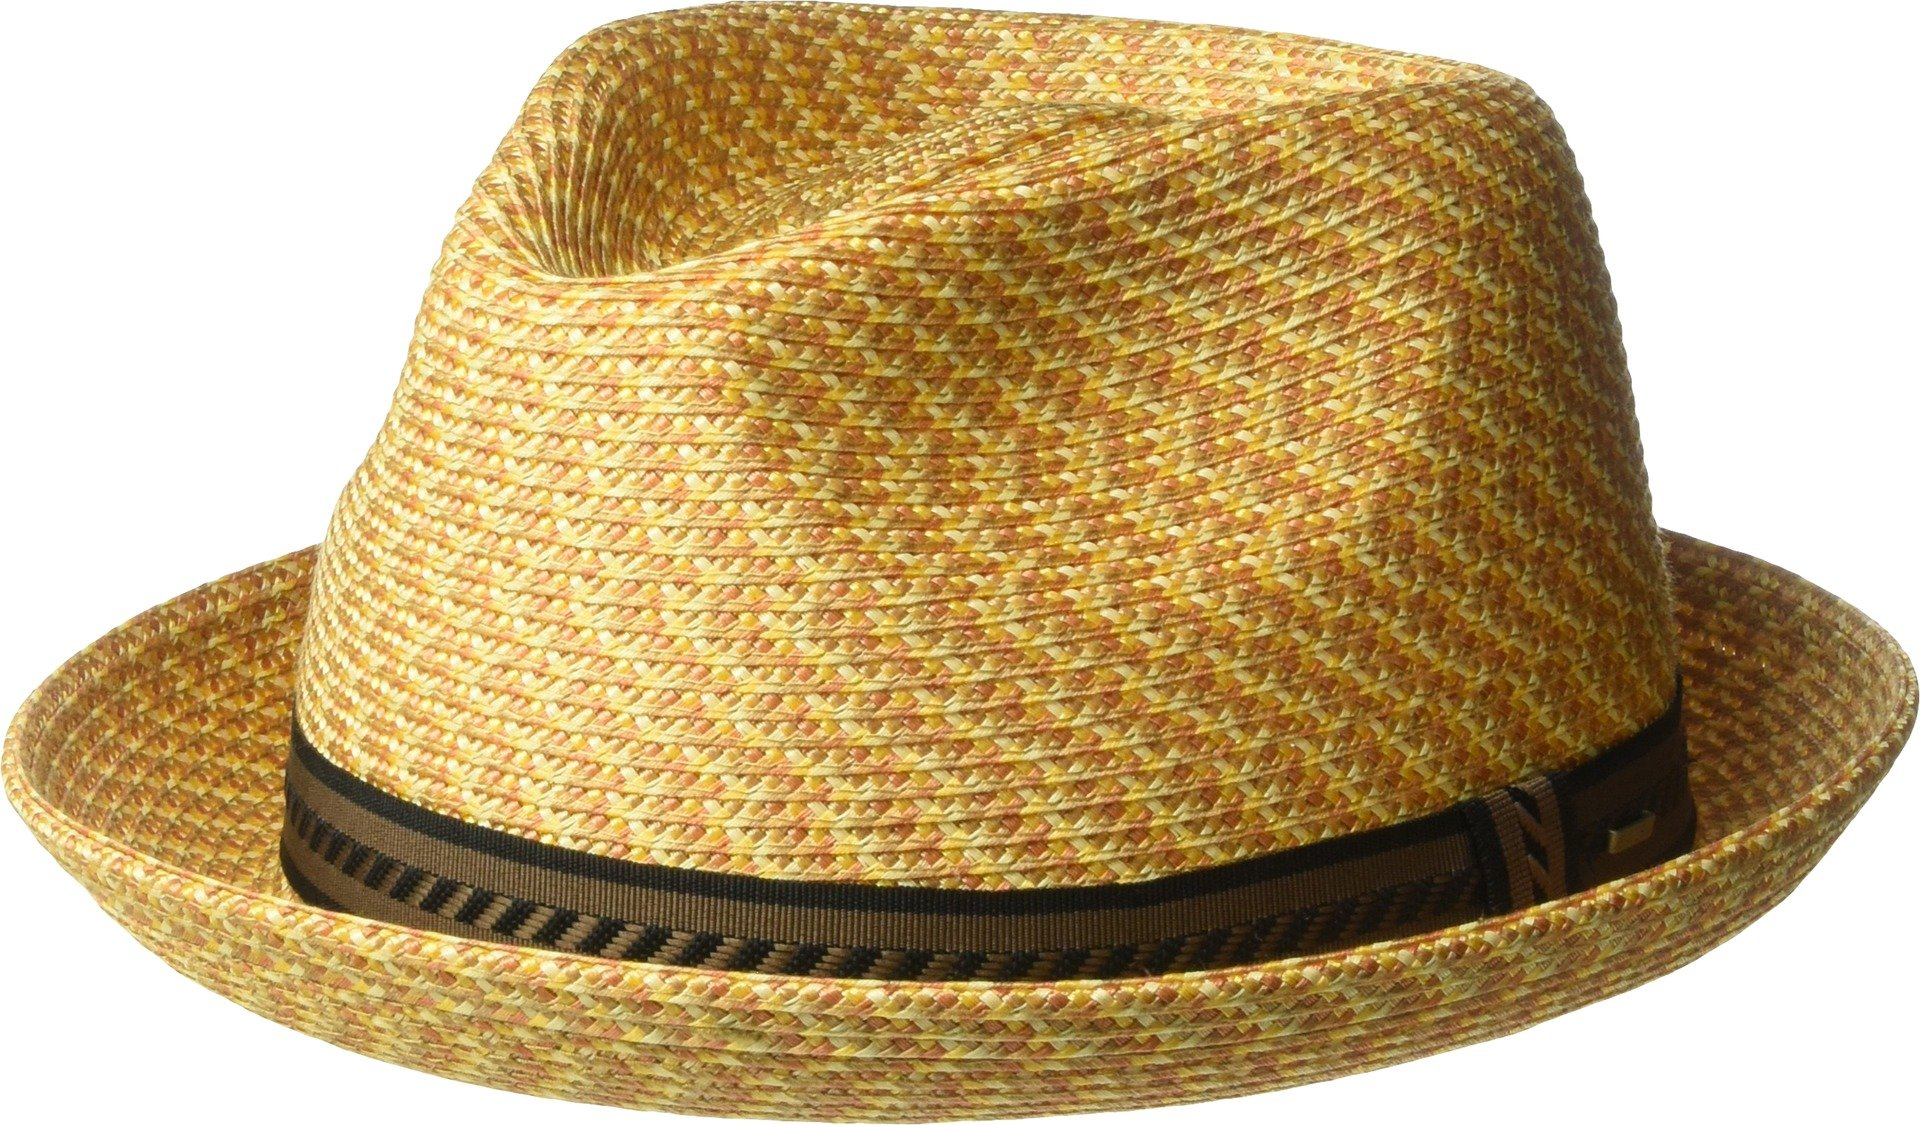 Bailey of Hollywood Men's Mannes Braided Fedora Trilby Hat, Wheat Multi, S